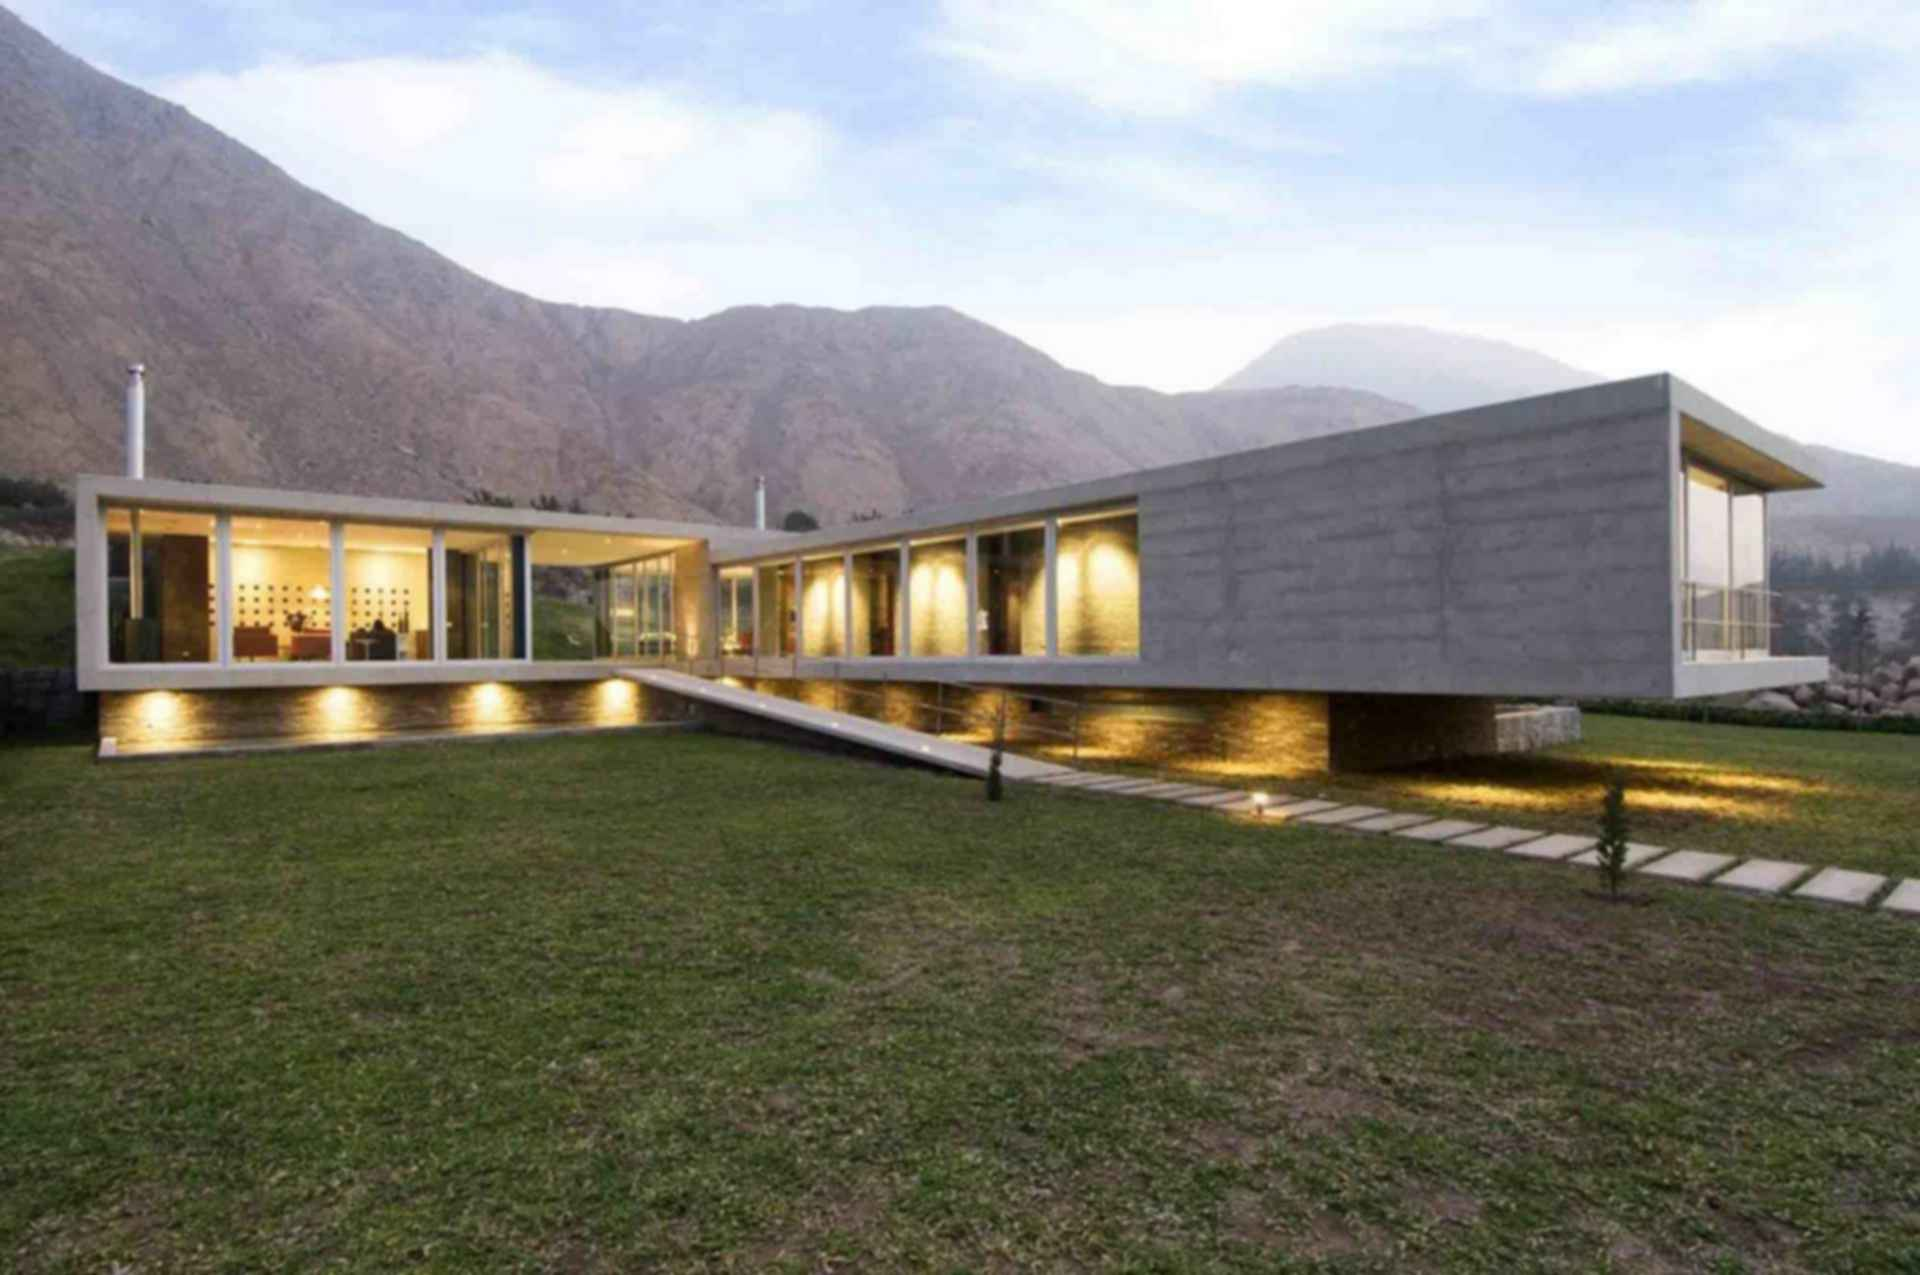 House on The Andes - exterior/landscaping